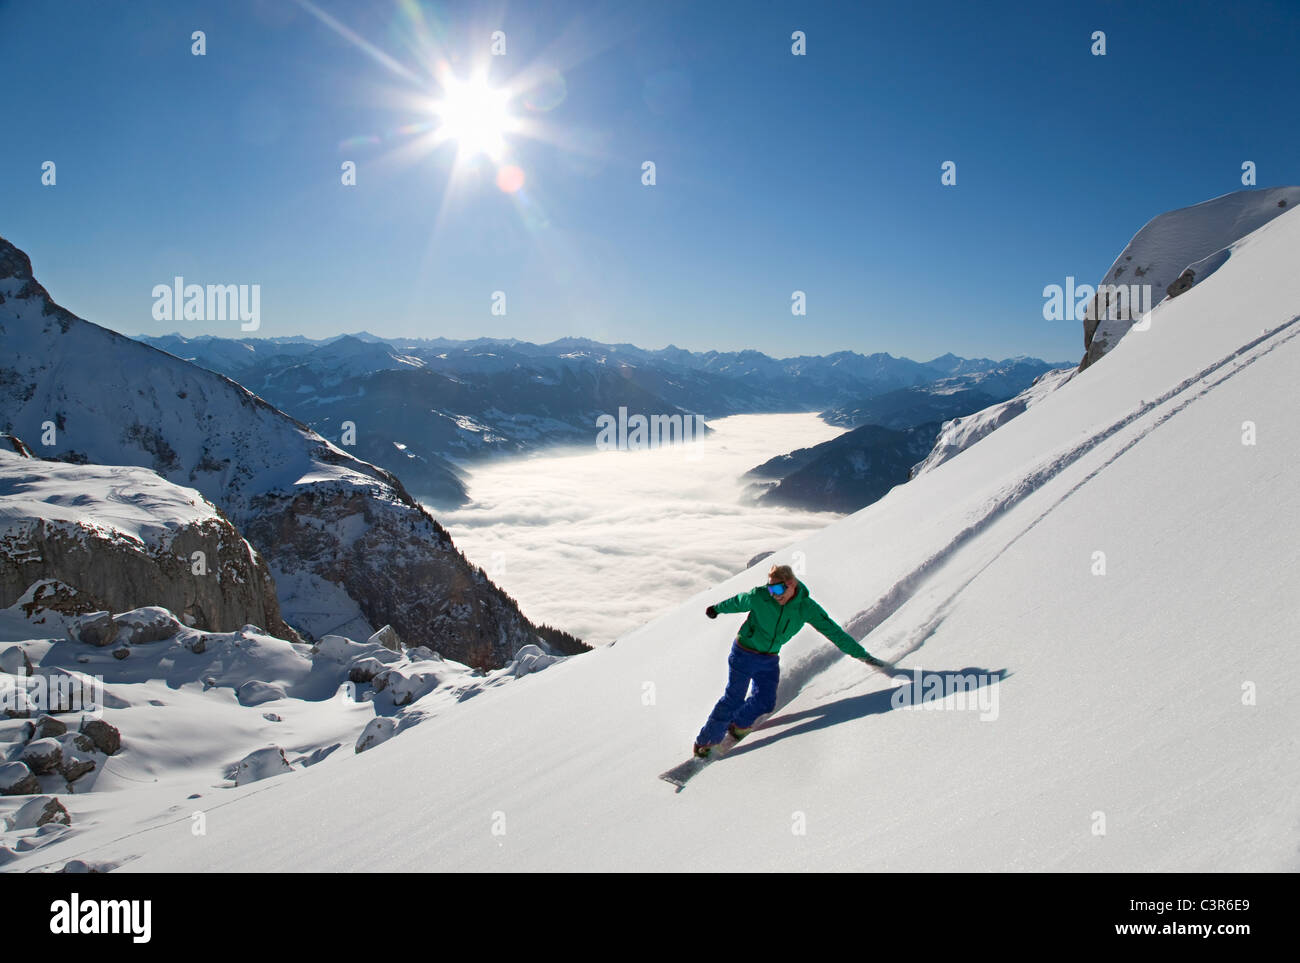 Snowboarder free riding - Stock Image